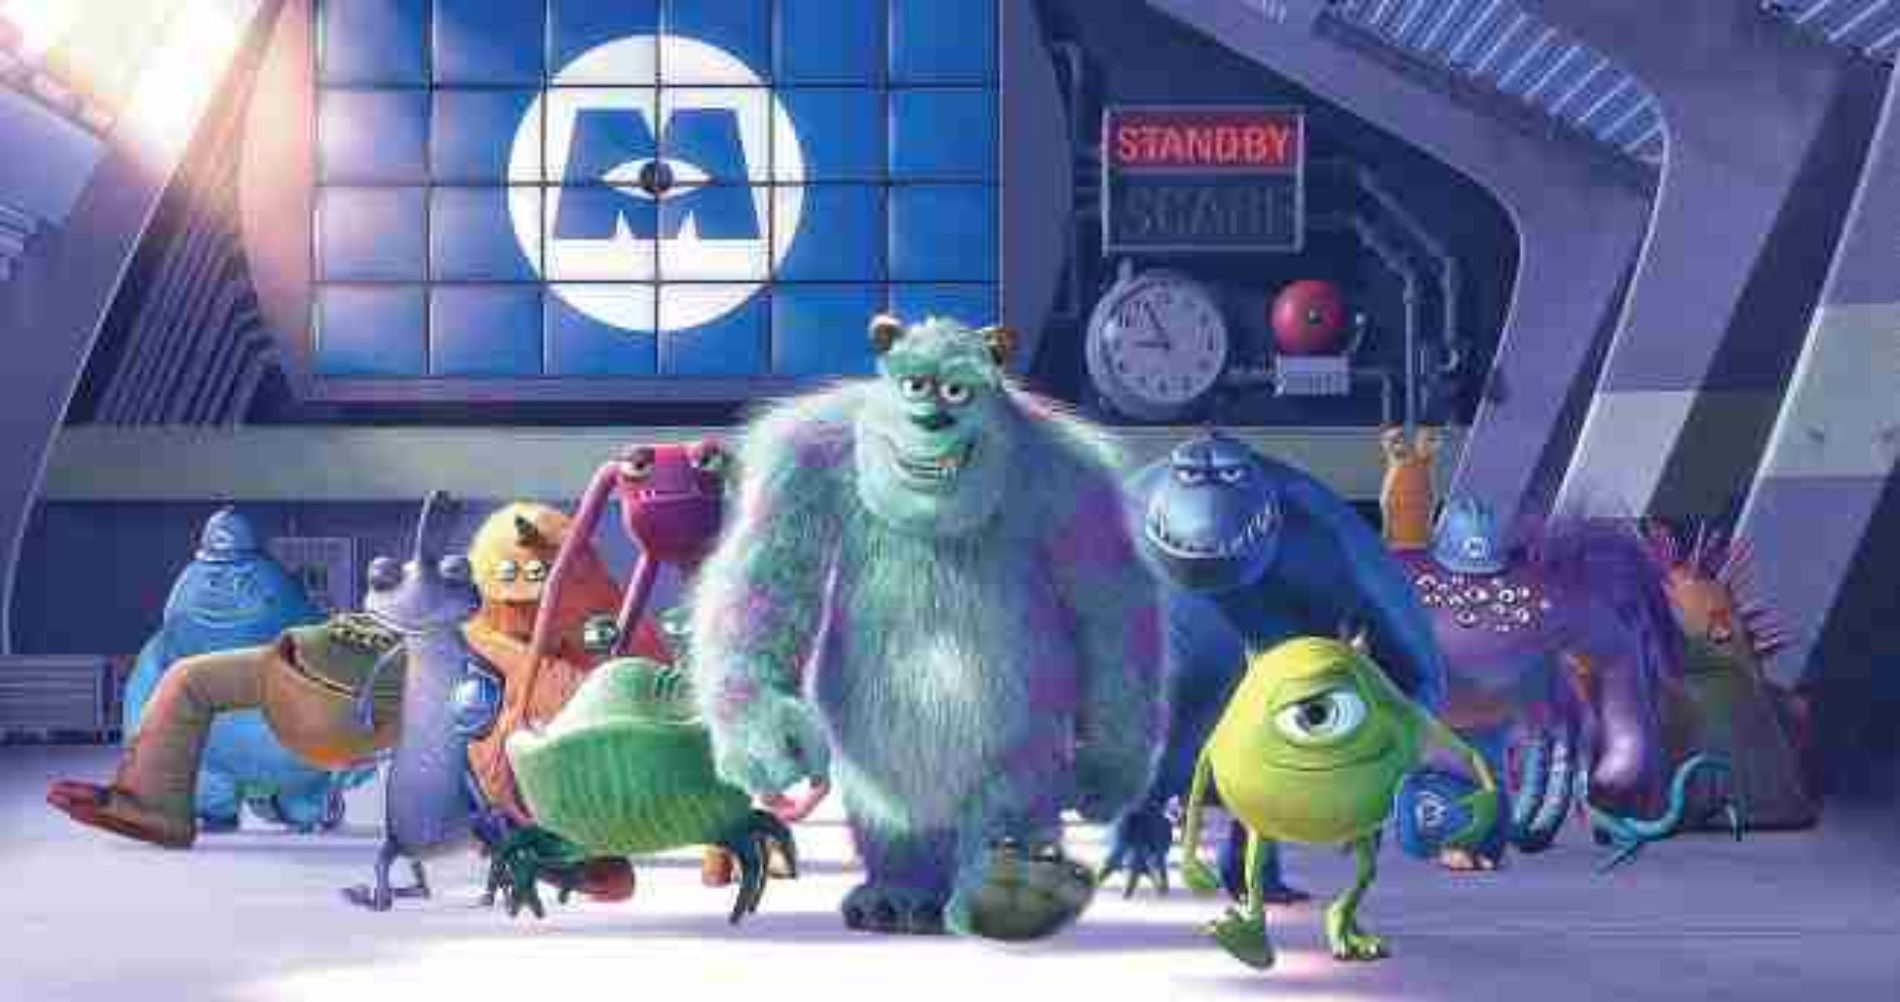 Nueva serie en Disney+ 'Monsters at Work'